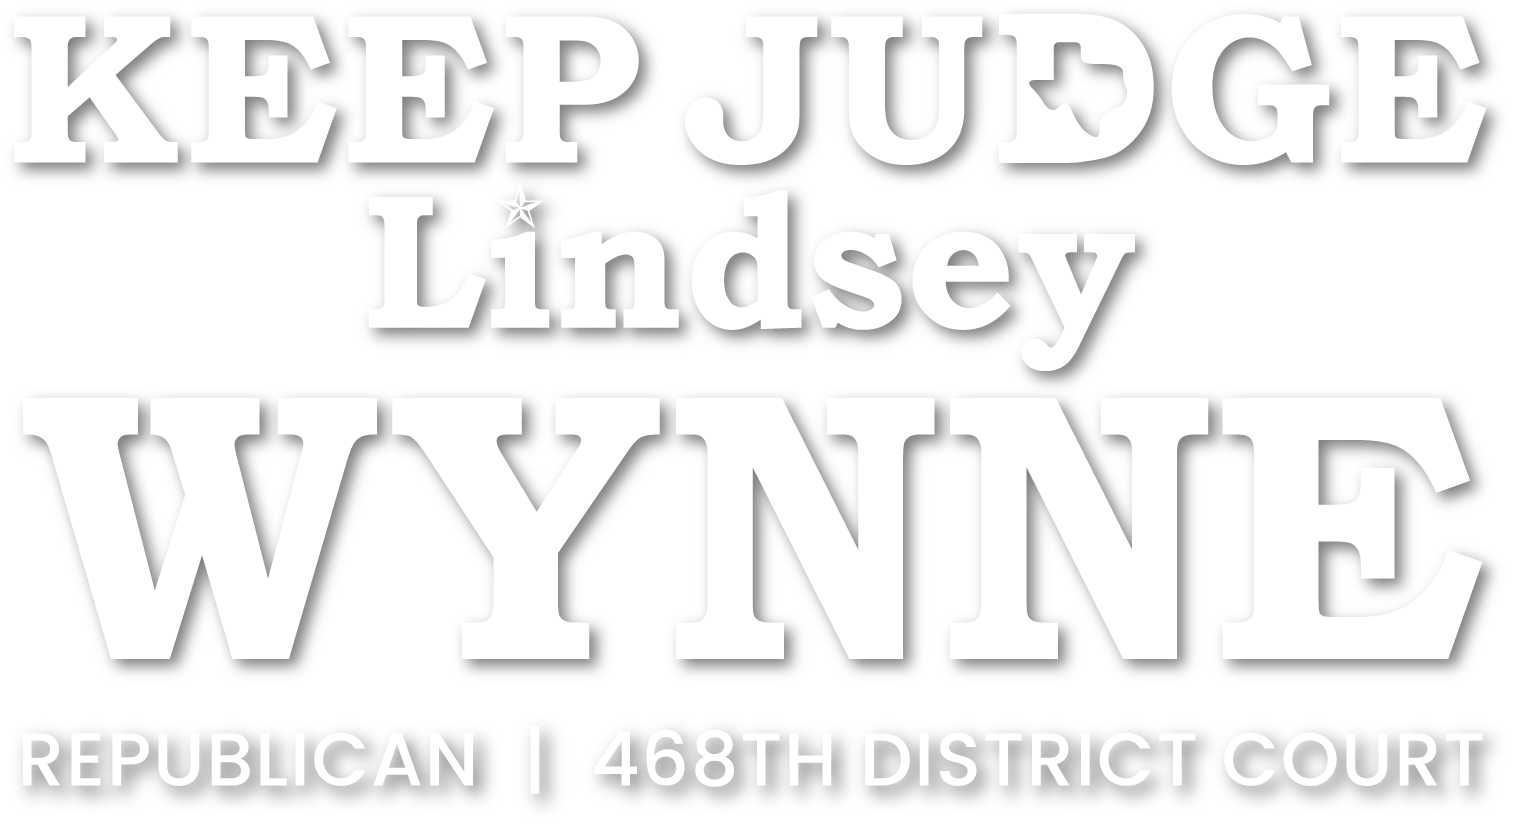 Keep Judge Lindsey Wynne